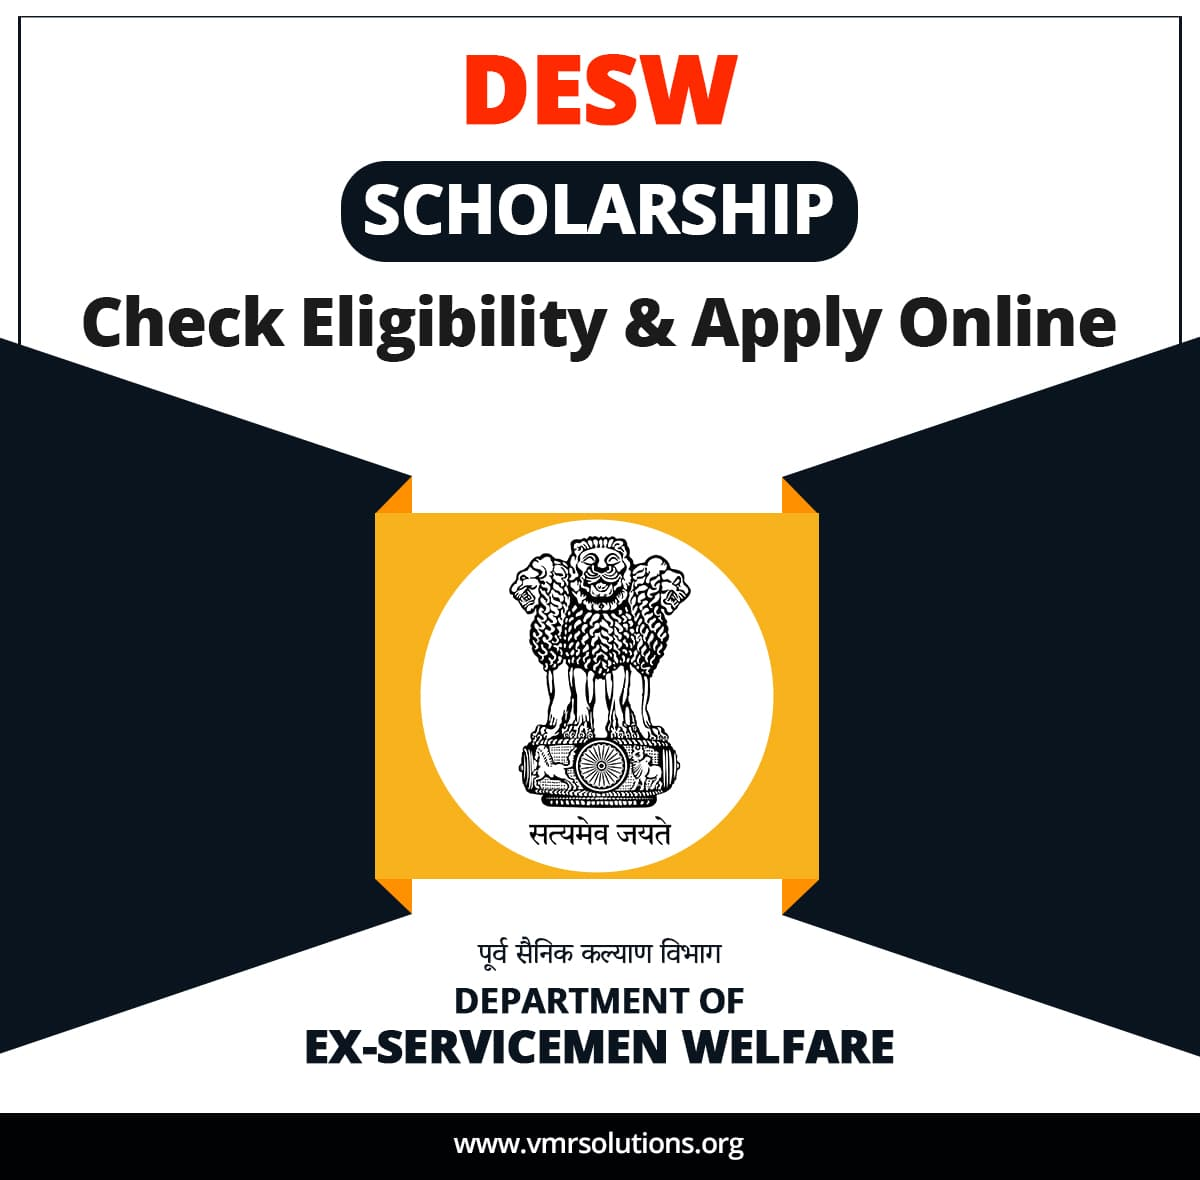 DESW_Scholarship.png